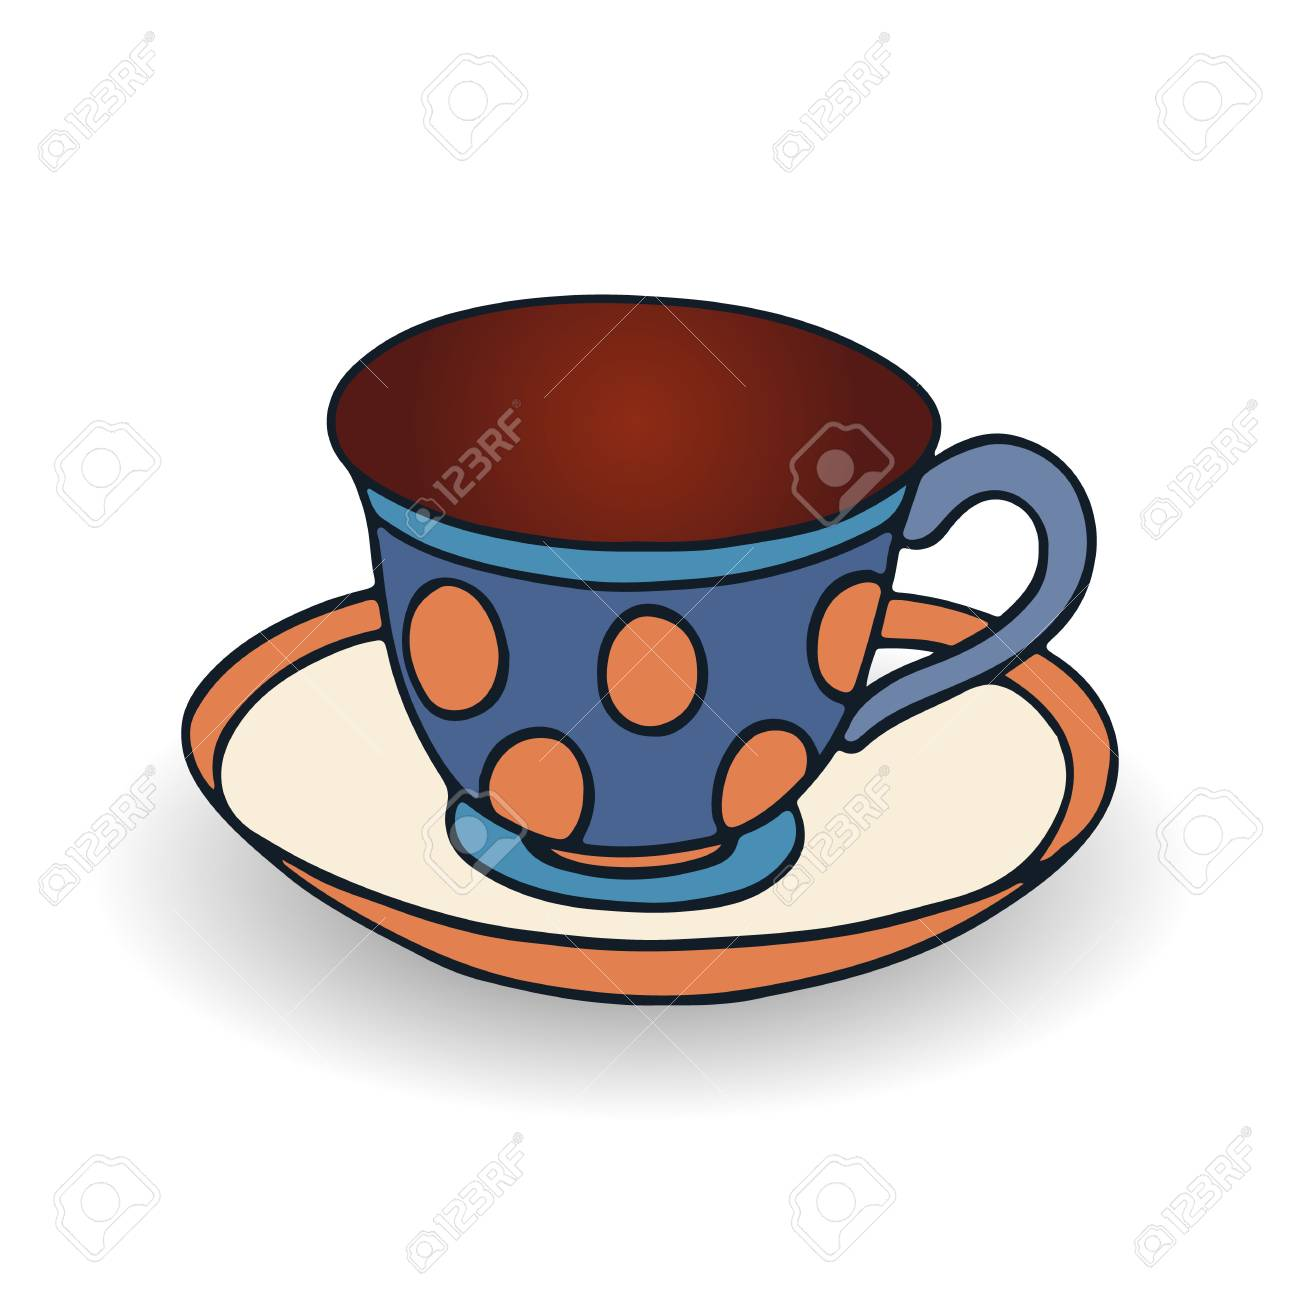 Blue Cup And Saucer For Coffee Cartoon On White Background Royalty Free Cliparts Vectors And Stock Illustration Image 102003797